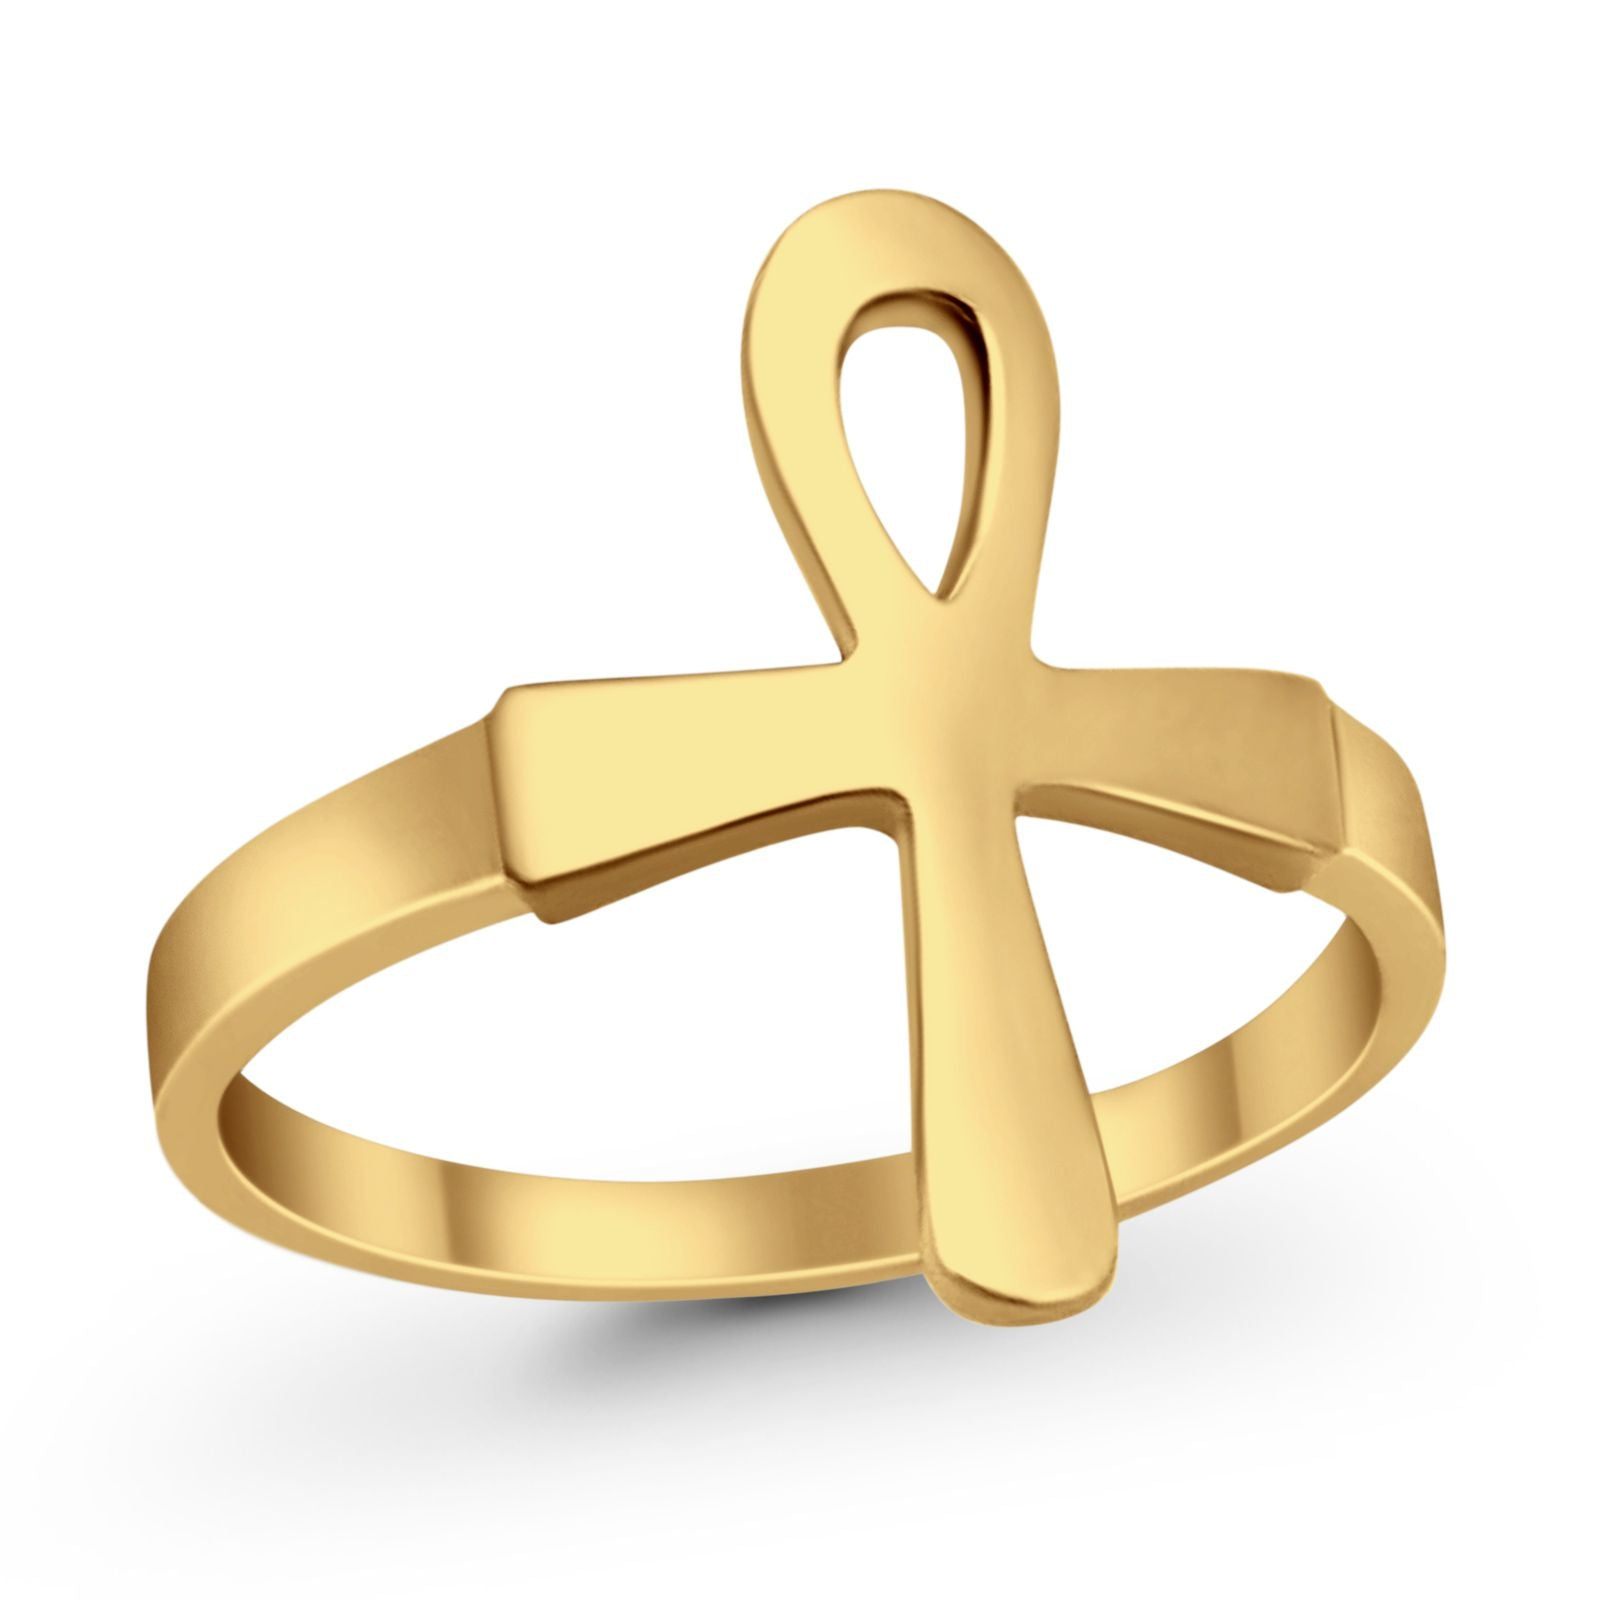 925 Sterling Silver Ankh Ring Yellow Tone Plain Simple Egyptian Design Ring